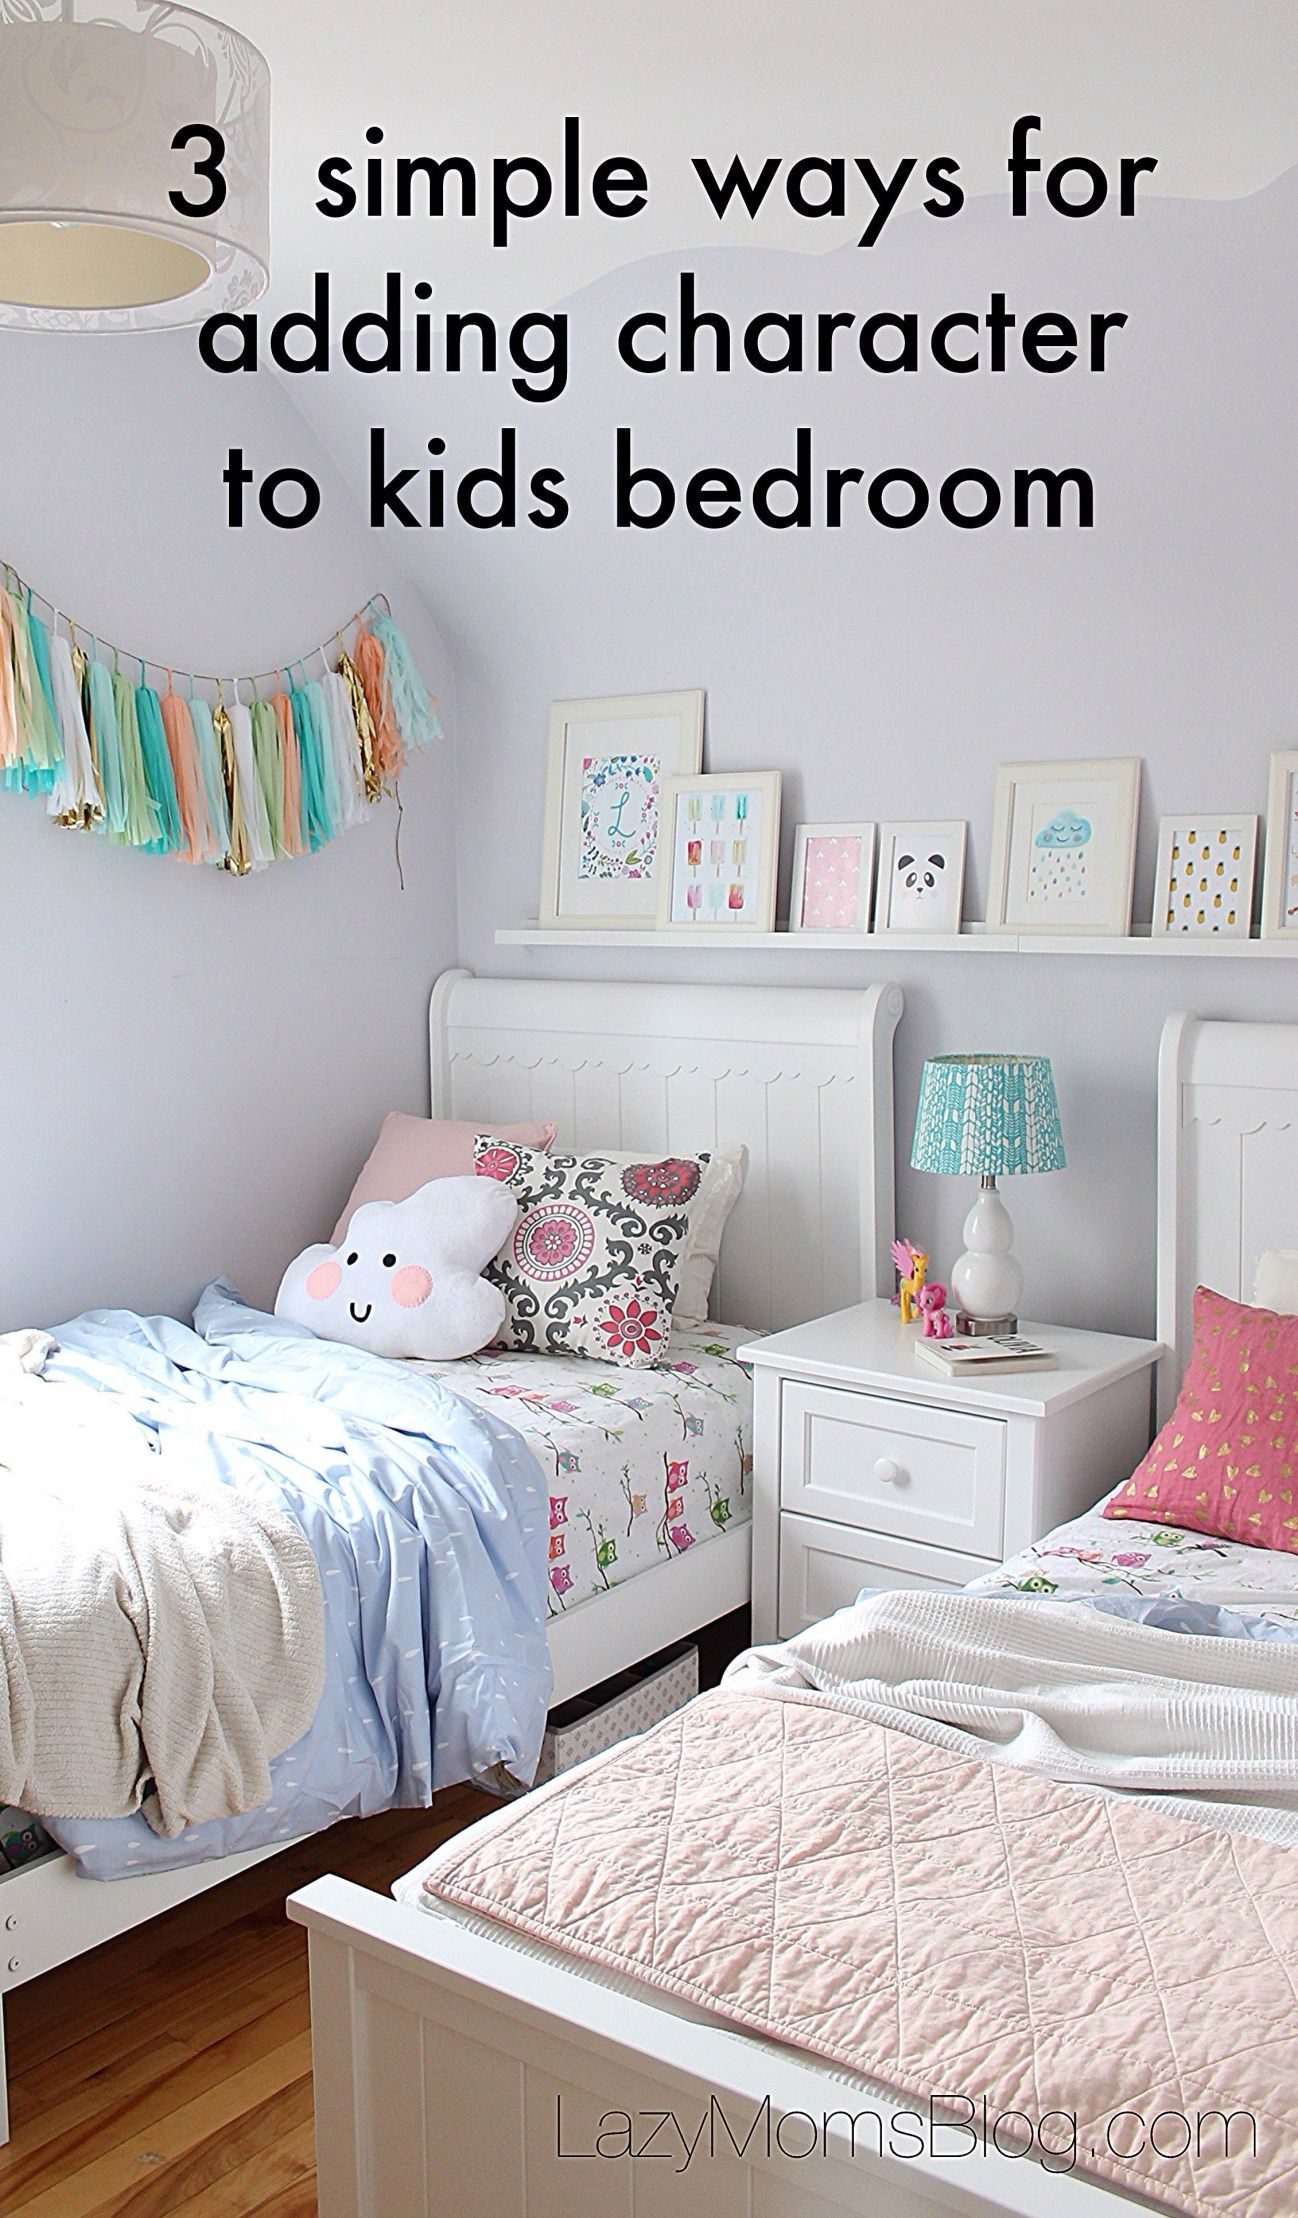 3 simple ways for adding character to kids bedroom | Pastels ...